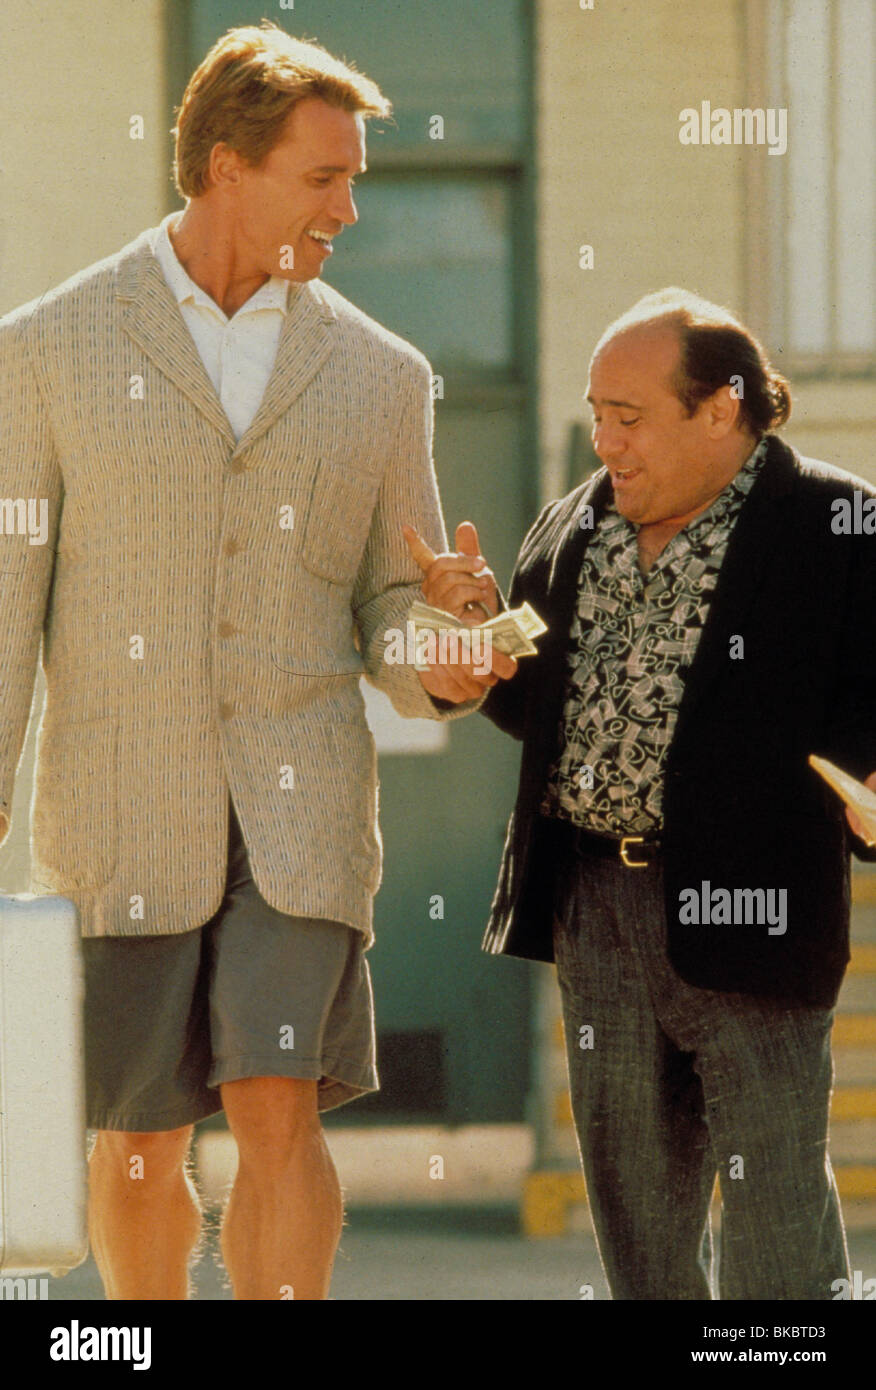 Twins 1988 Arnold Schwarzenegger Danny Devito Tws 076 Stock Photo Alamy